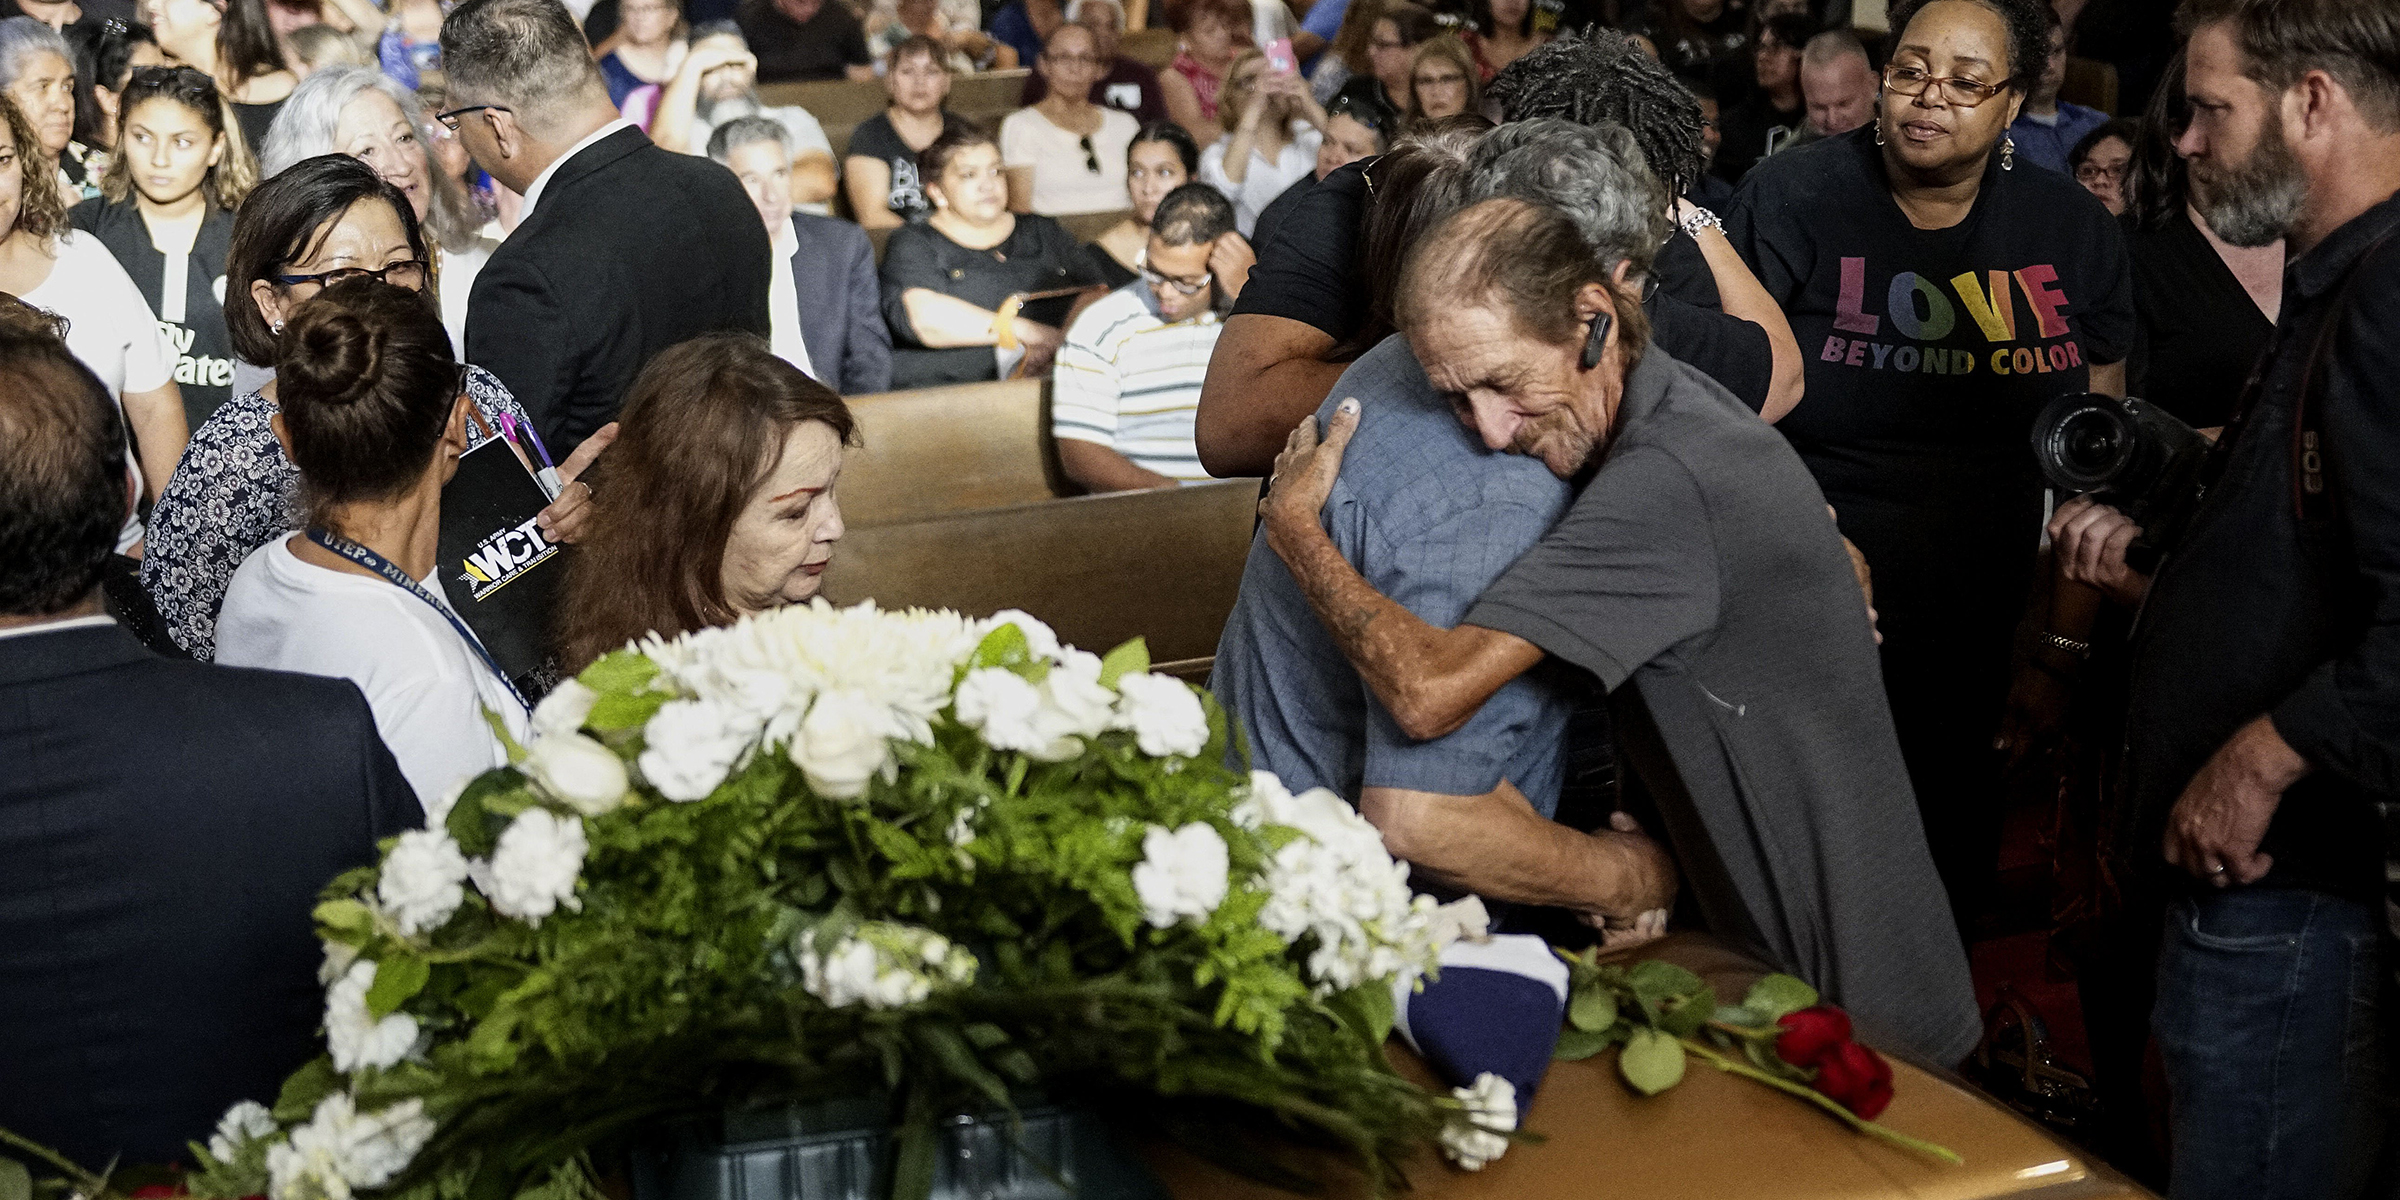 Hundreds attend funeral for El Paso shooting victim after public was invited